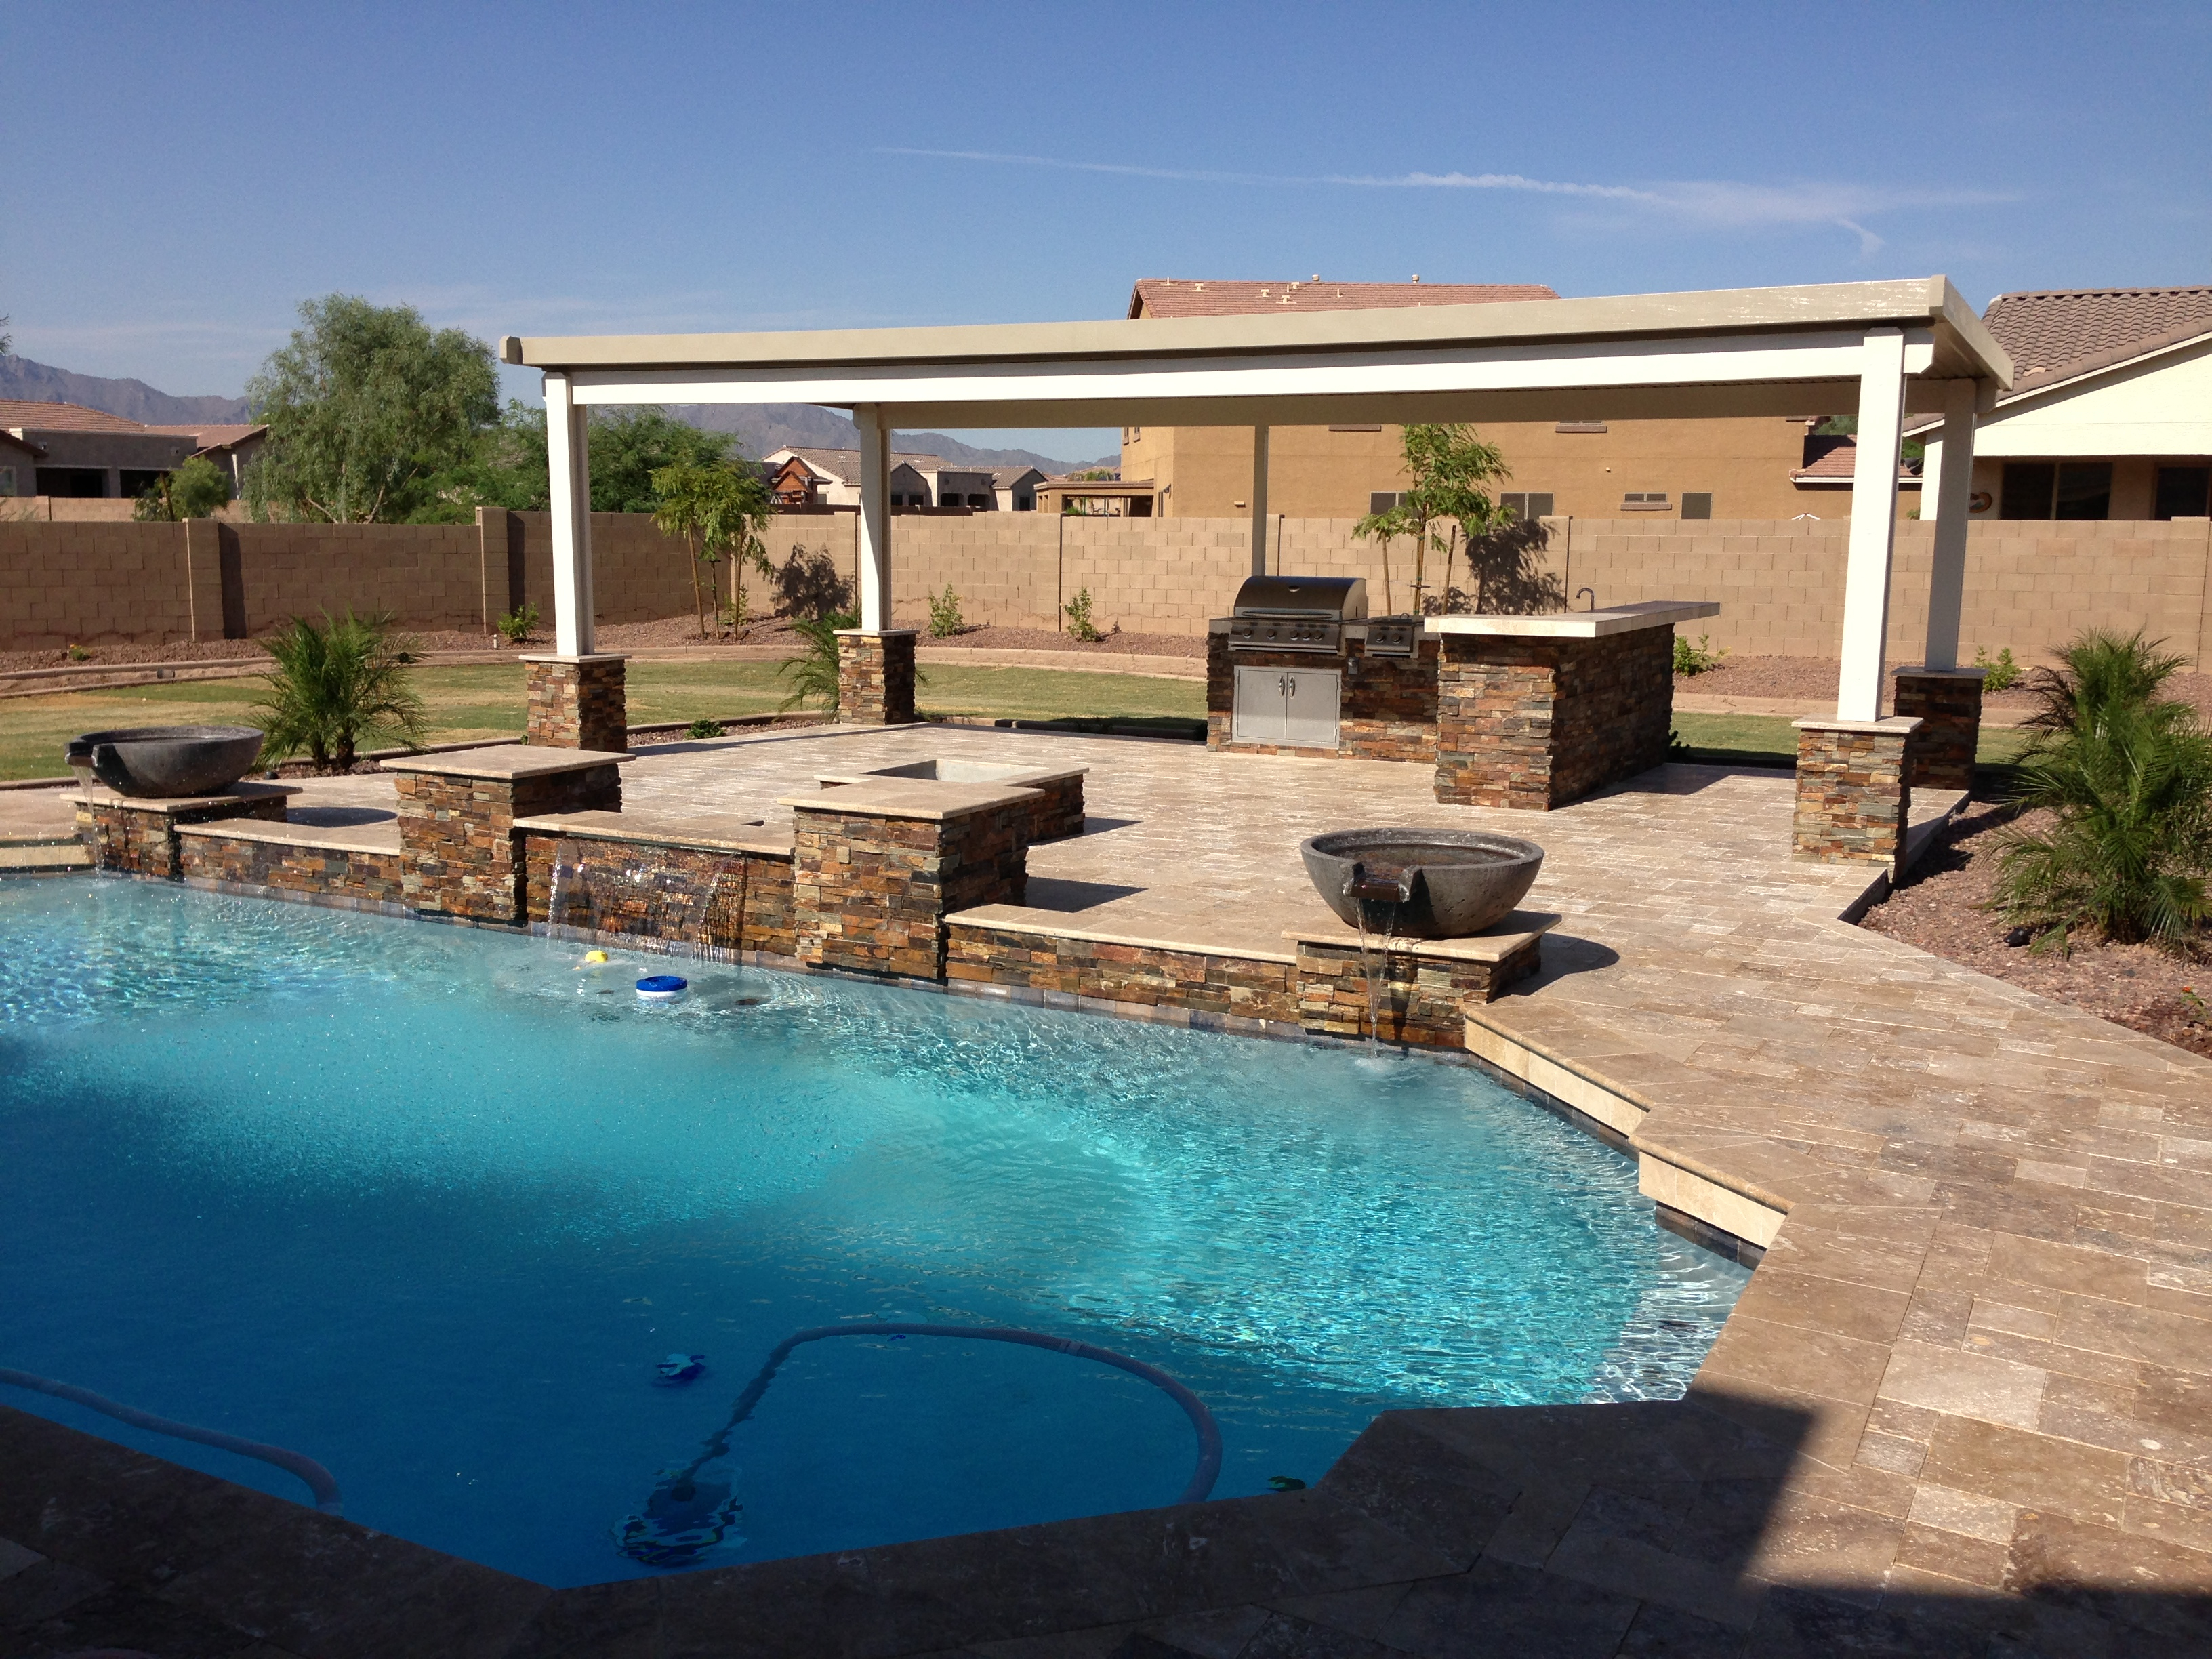 Phoenix Landscaping Designs Outdoor Kitchens And Pavers regarding 12 Some of the Coolest Designs of How to Improve Backyard Landscaping Arizona